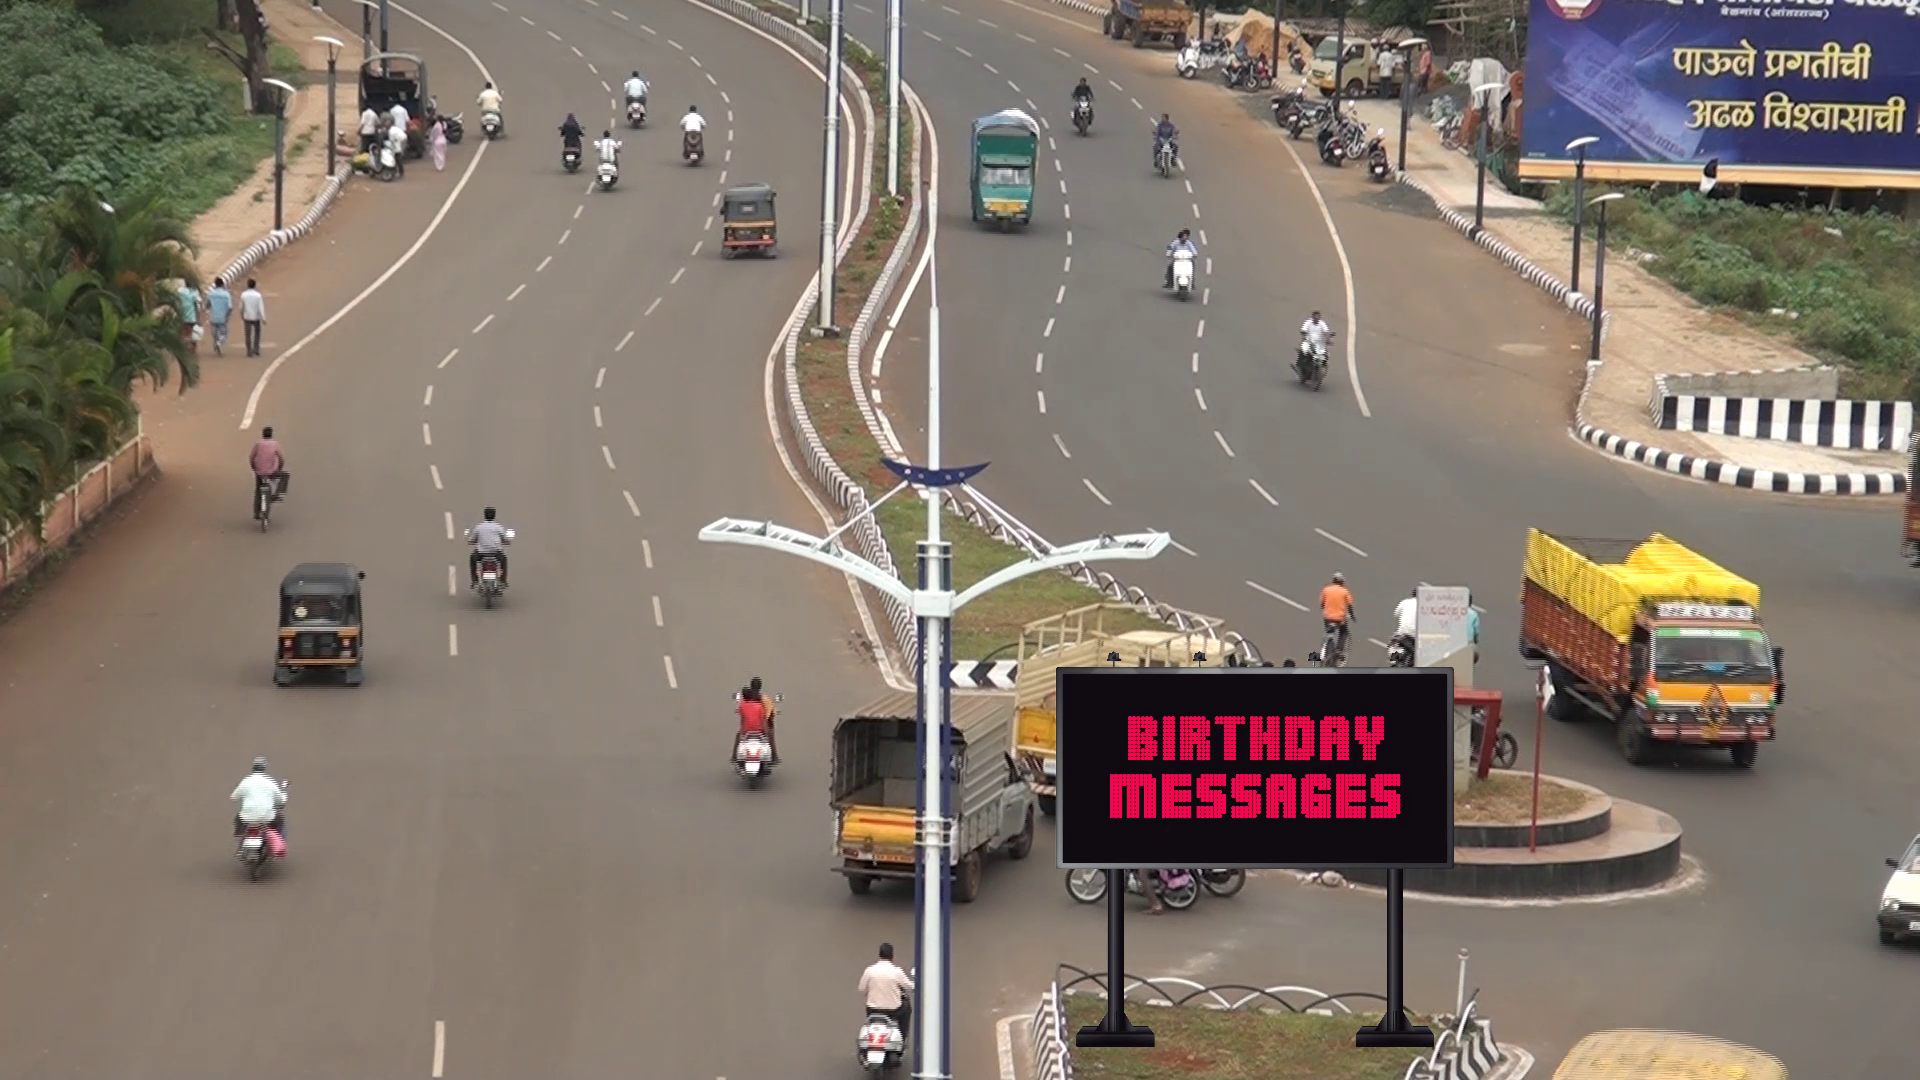 advertise your message on LED billboard in Belgaum India